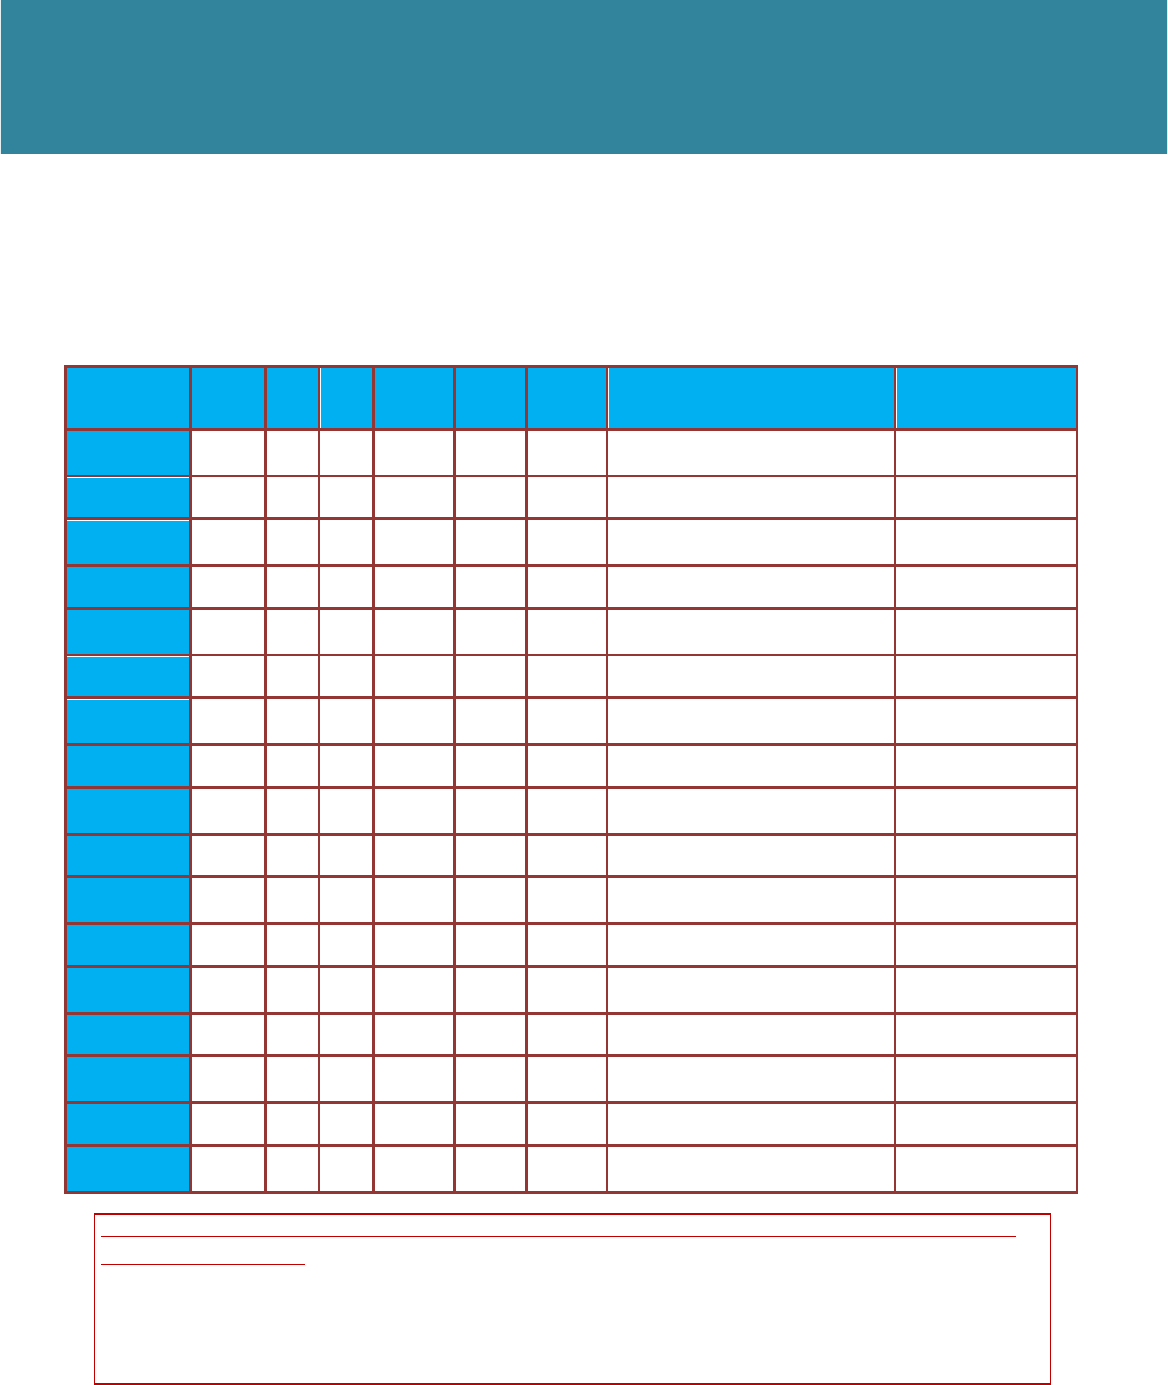 Attendance Sheet Template In Word And Pdf Formats  Attendance Log